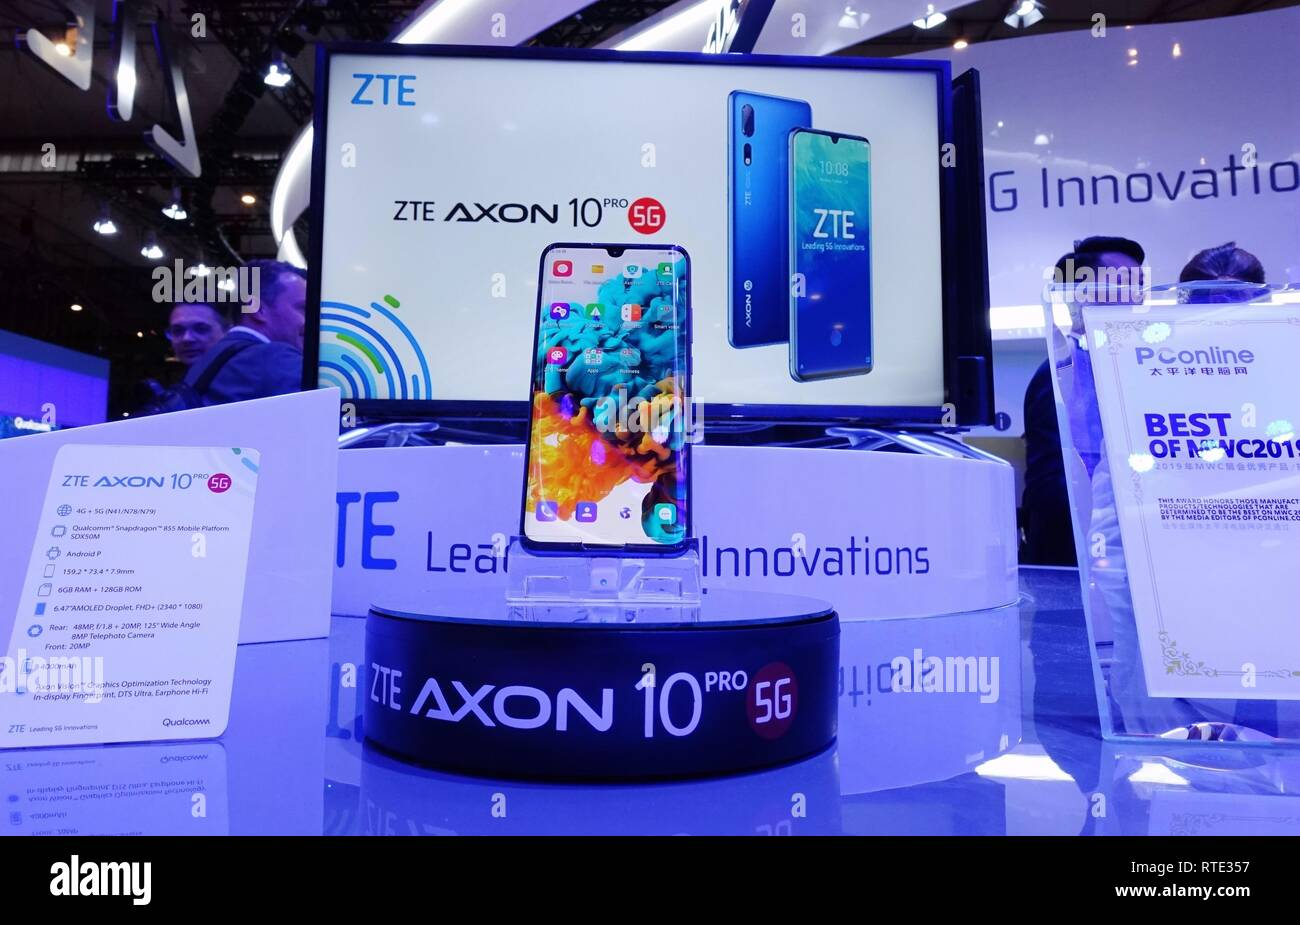 Barcelona, Spain. 26th Feb, 2019. China's ZTE presents its Axon 10 Pro 5G cellphone at Mobile World Congress (MWC 2019) in Barcelona, Spain, Feb. 26, 2019. The four-day MWC 2019 presents the newest 5G products of the high-tech giants from around the world. Credit: Guo Qiuda/Xinhua/Alamy Live News Stock Photo